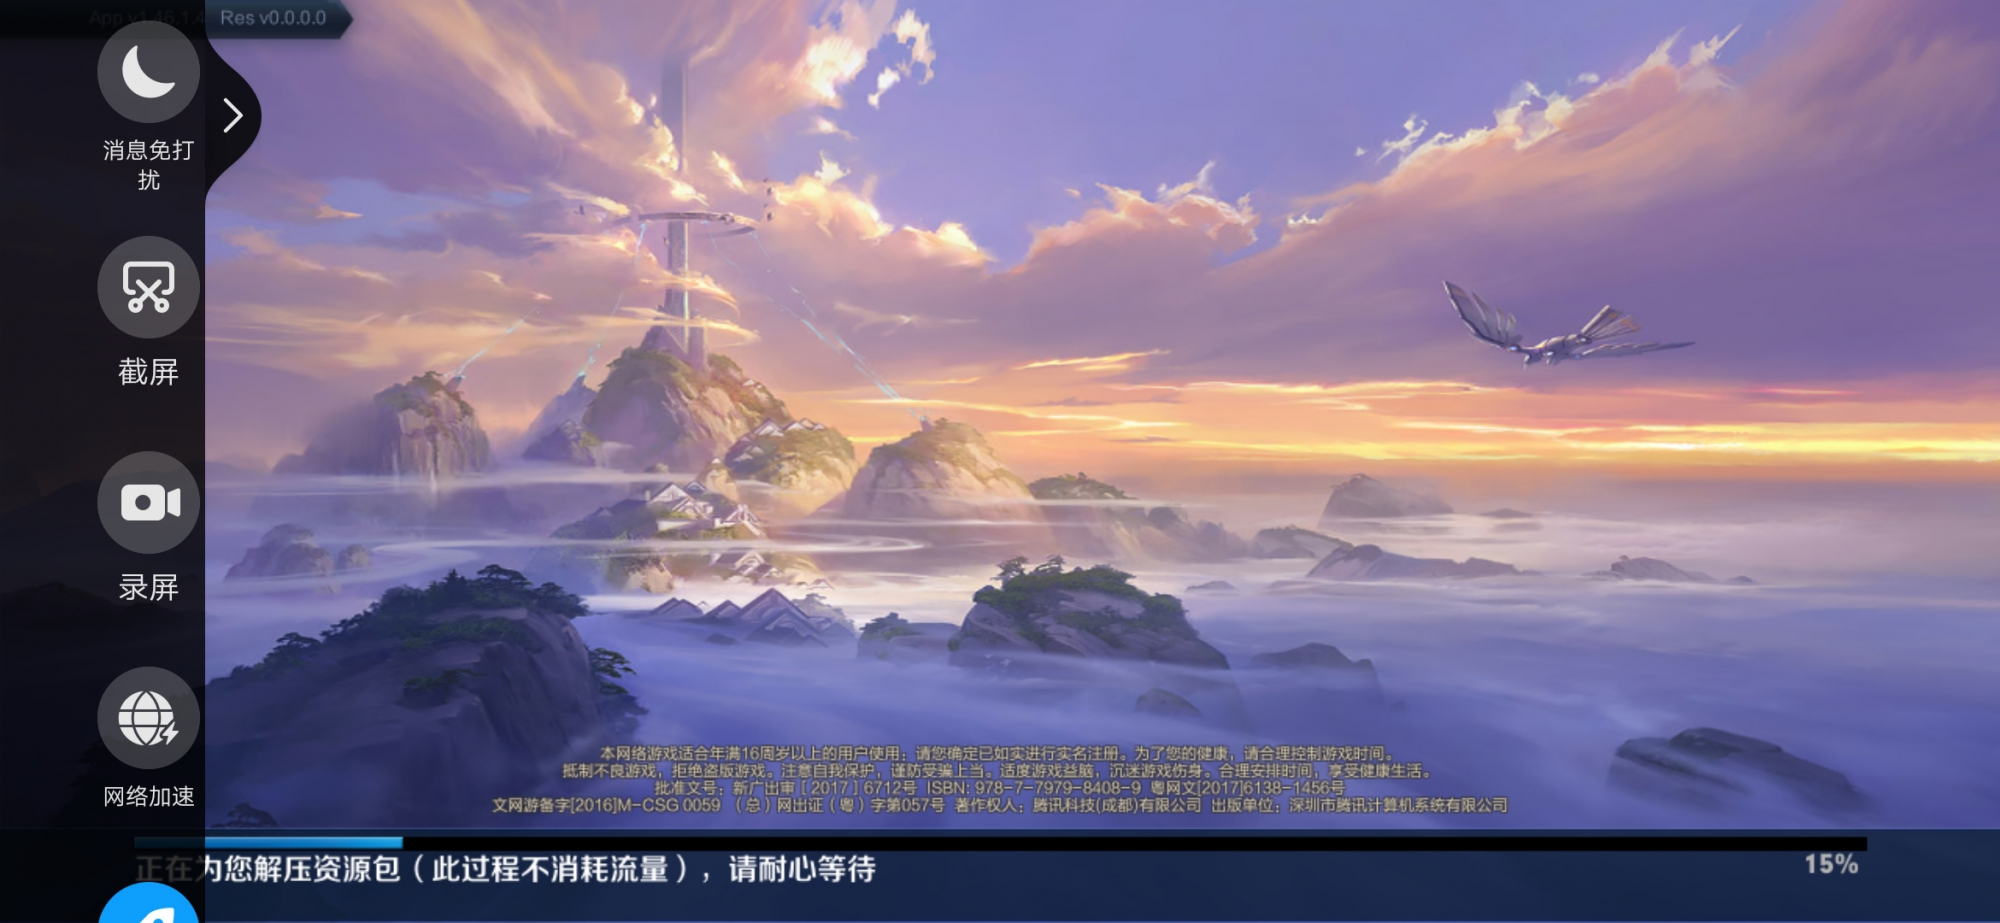 Screenshot_20190828_163930_com.tencent.tmgp.sgame.jpg